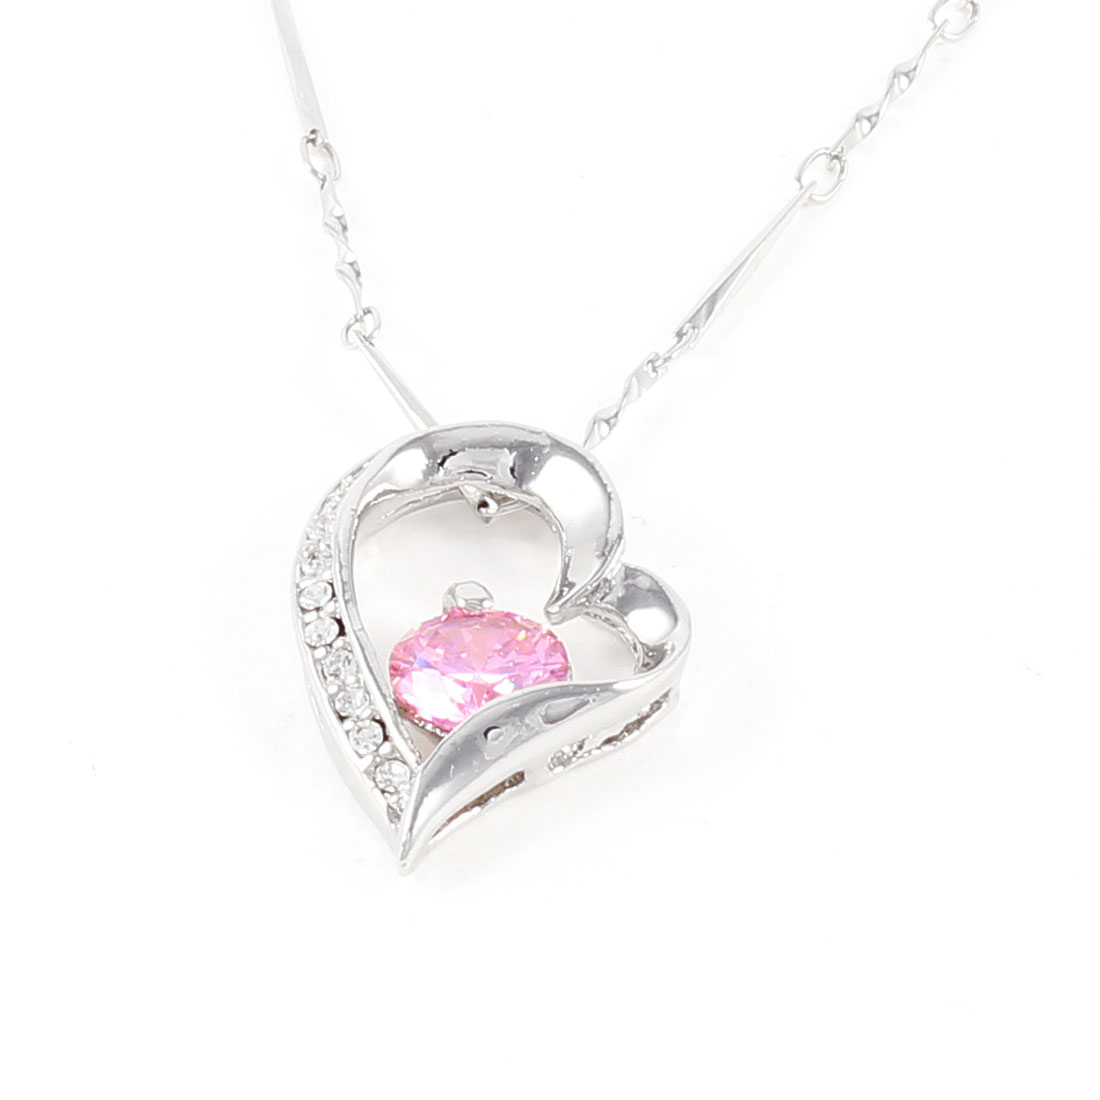 Spring Closure Hollow Out Heart Shaped Necklace Chain Silver Tone for Woman